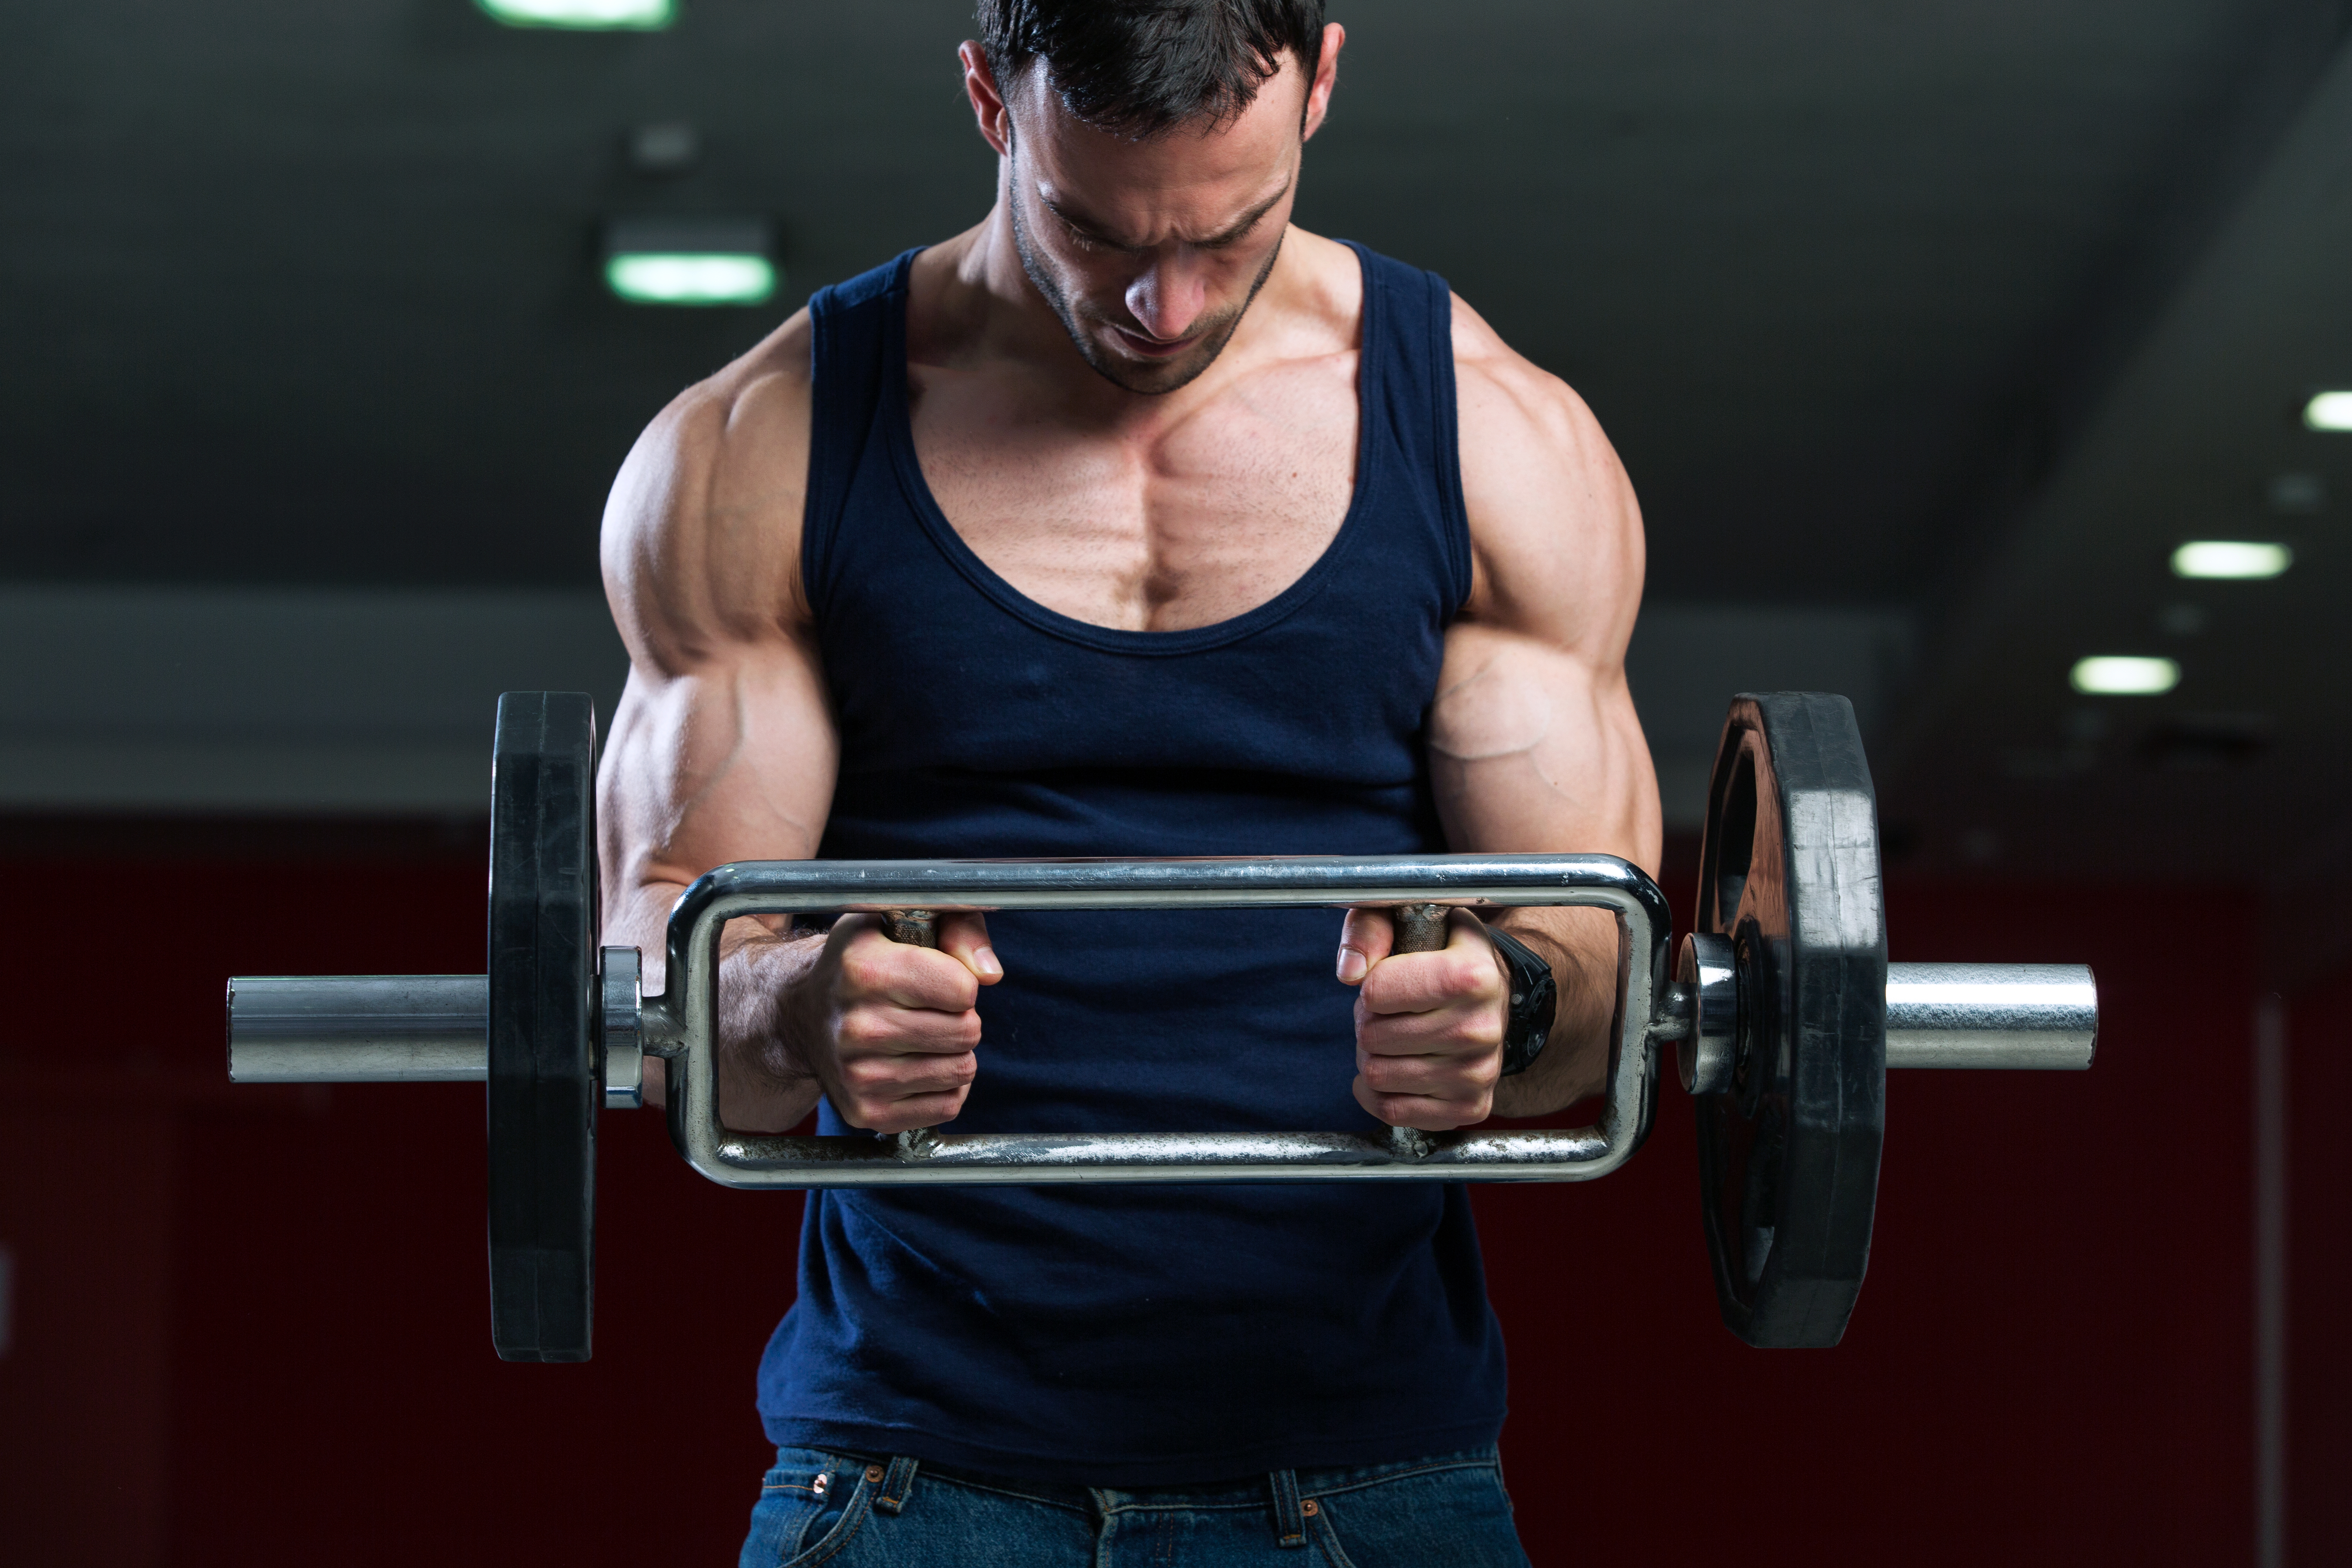 Electric Shock Feeling in Arms from Weightlifting: Causes